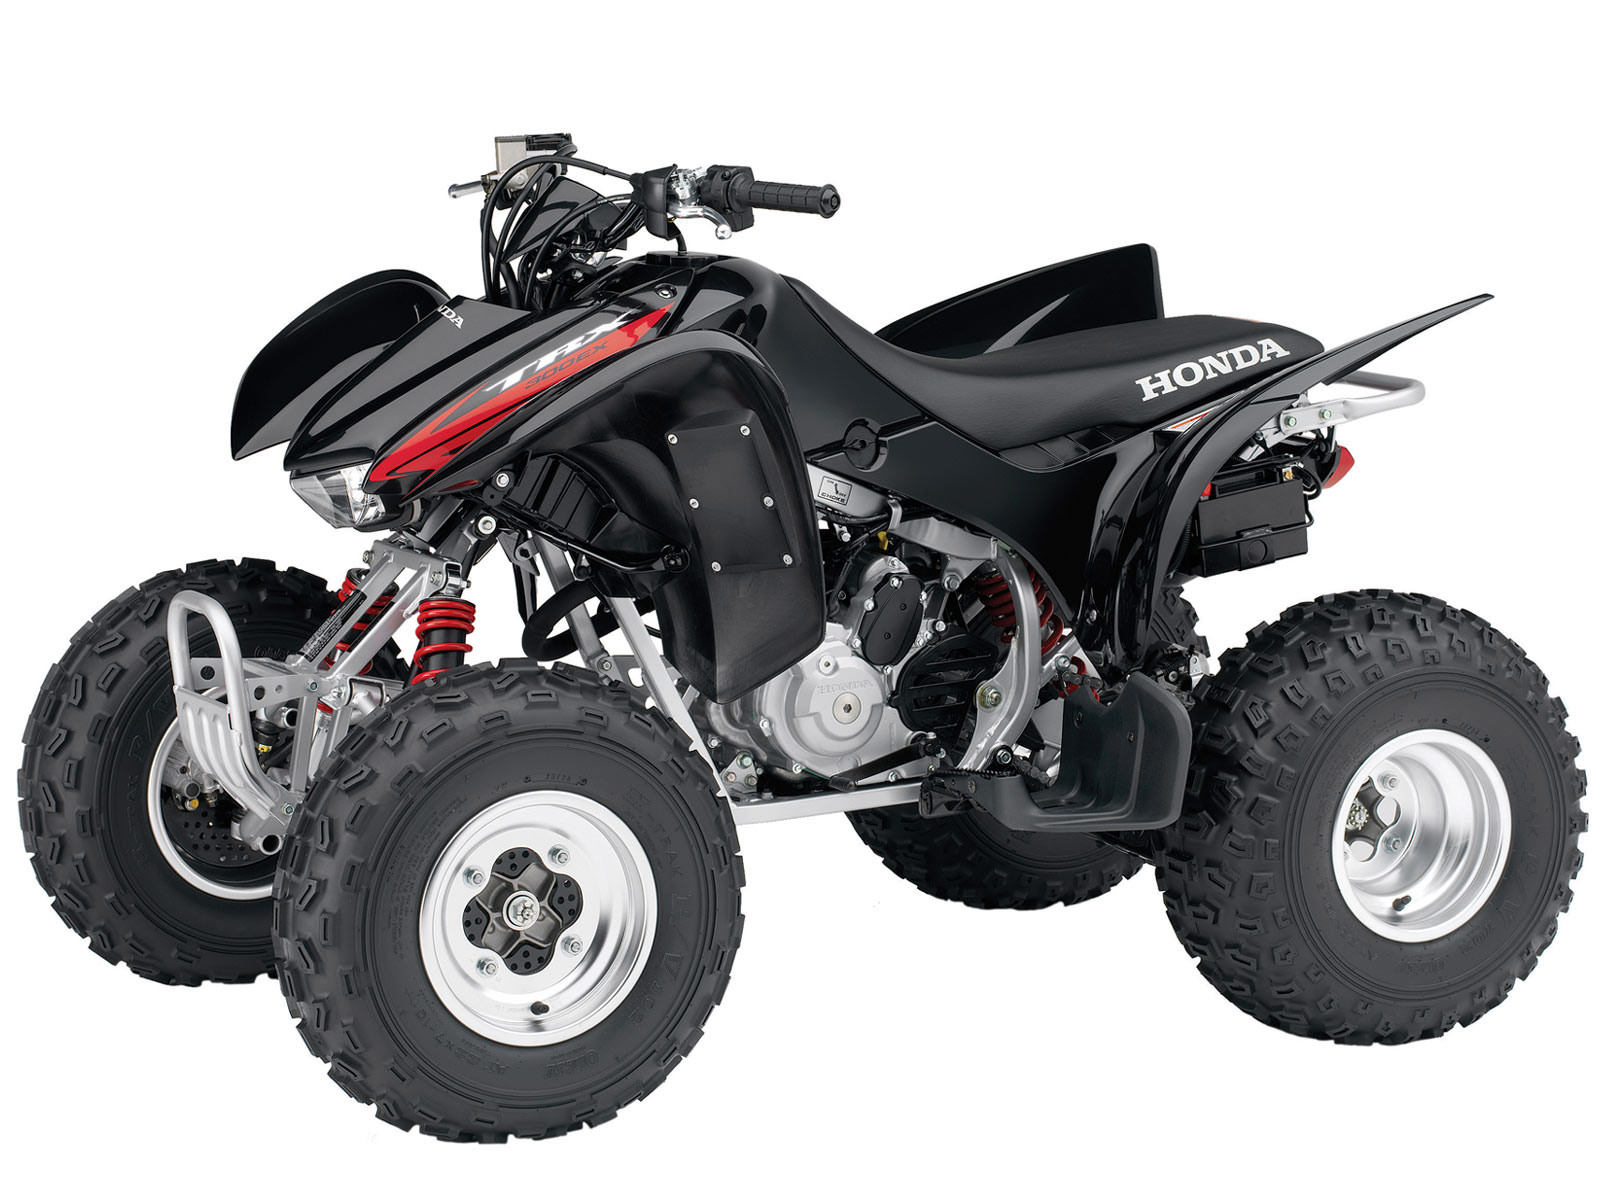 2007 honda trx 300ex atv pictures and specifications. Black Bedroom Furniture Sets. Home Design Ideas